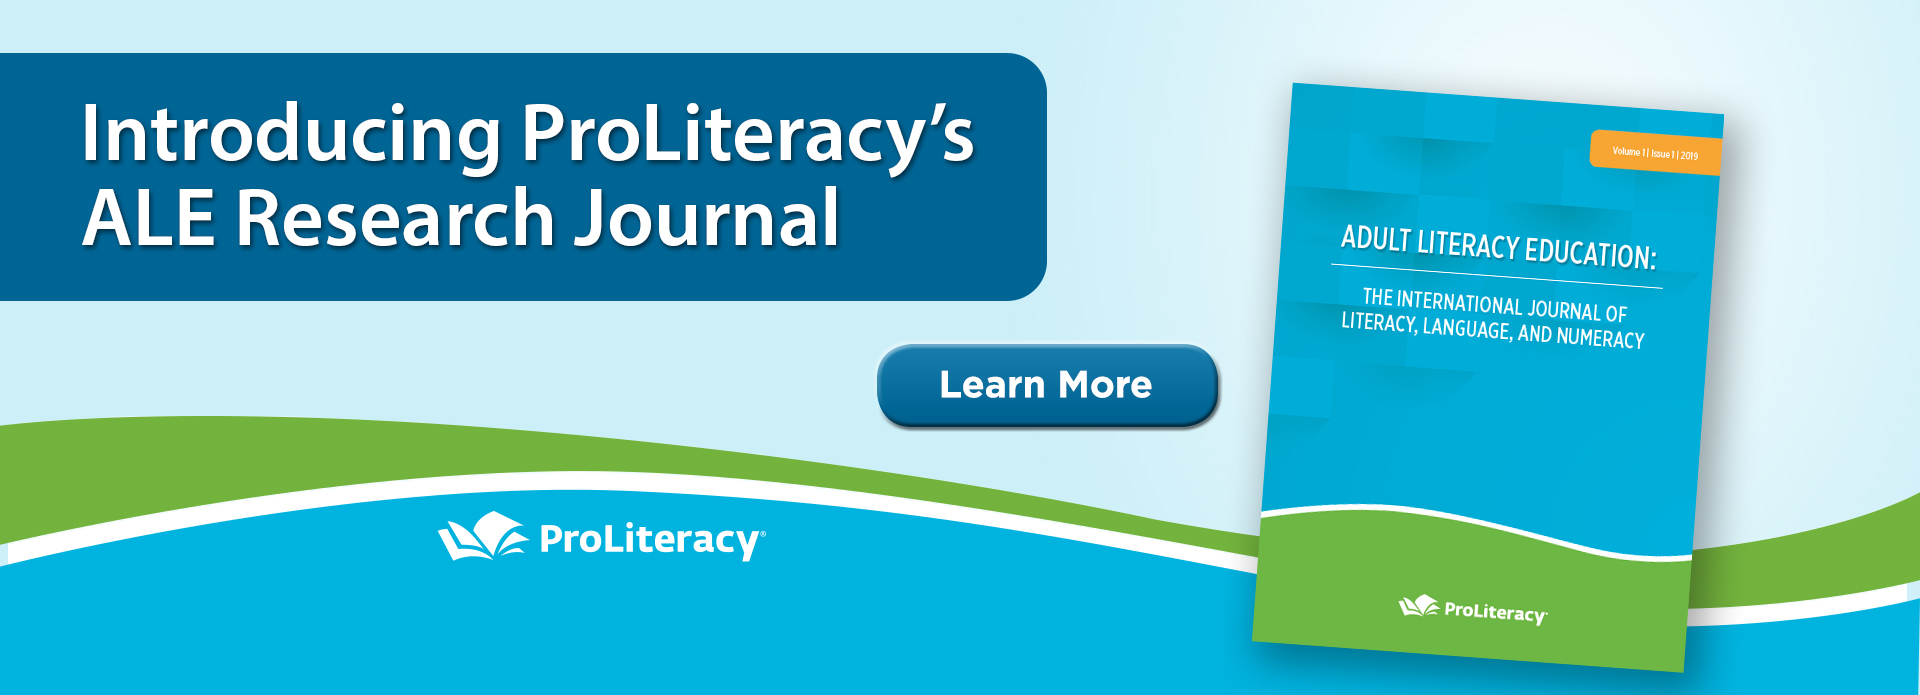 Adult Literacy Education: The International Journal of Literacy, Language, and Numeracy